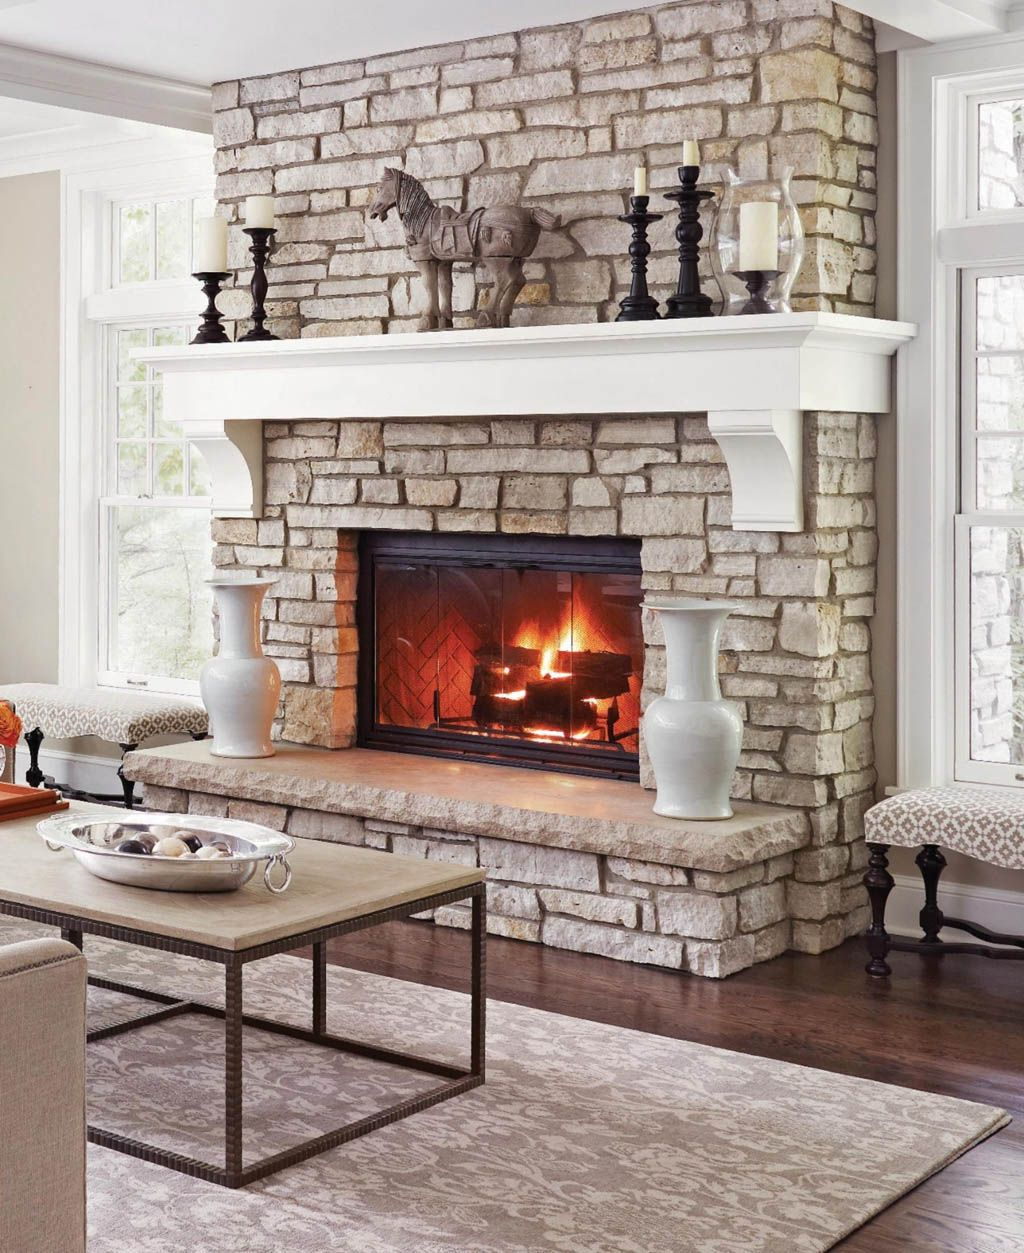 Fireplace Mantel Corbels Best Of Mantel Shelf with Corbels Google Search with Images